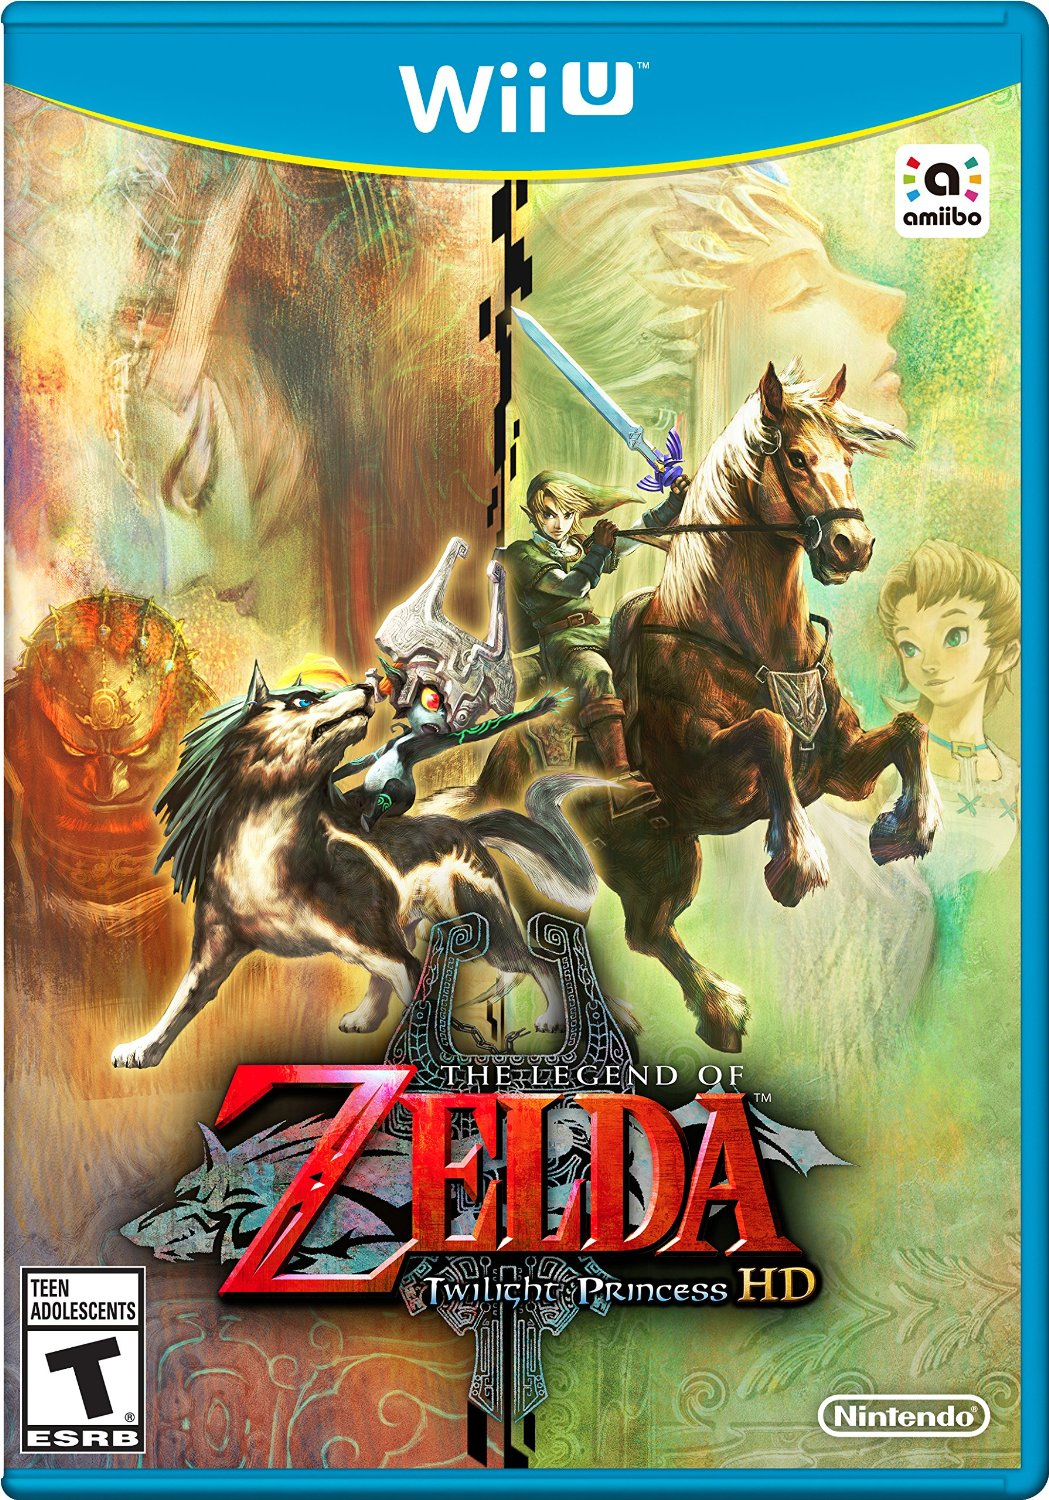 REVIEW: The Legend of Zelda: Twilight Princess HD - oprainfall